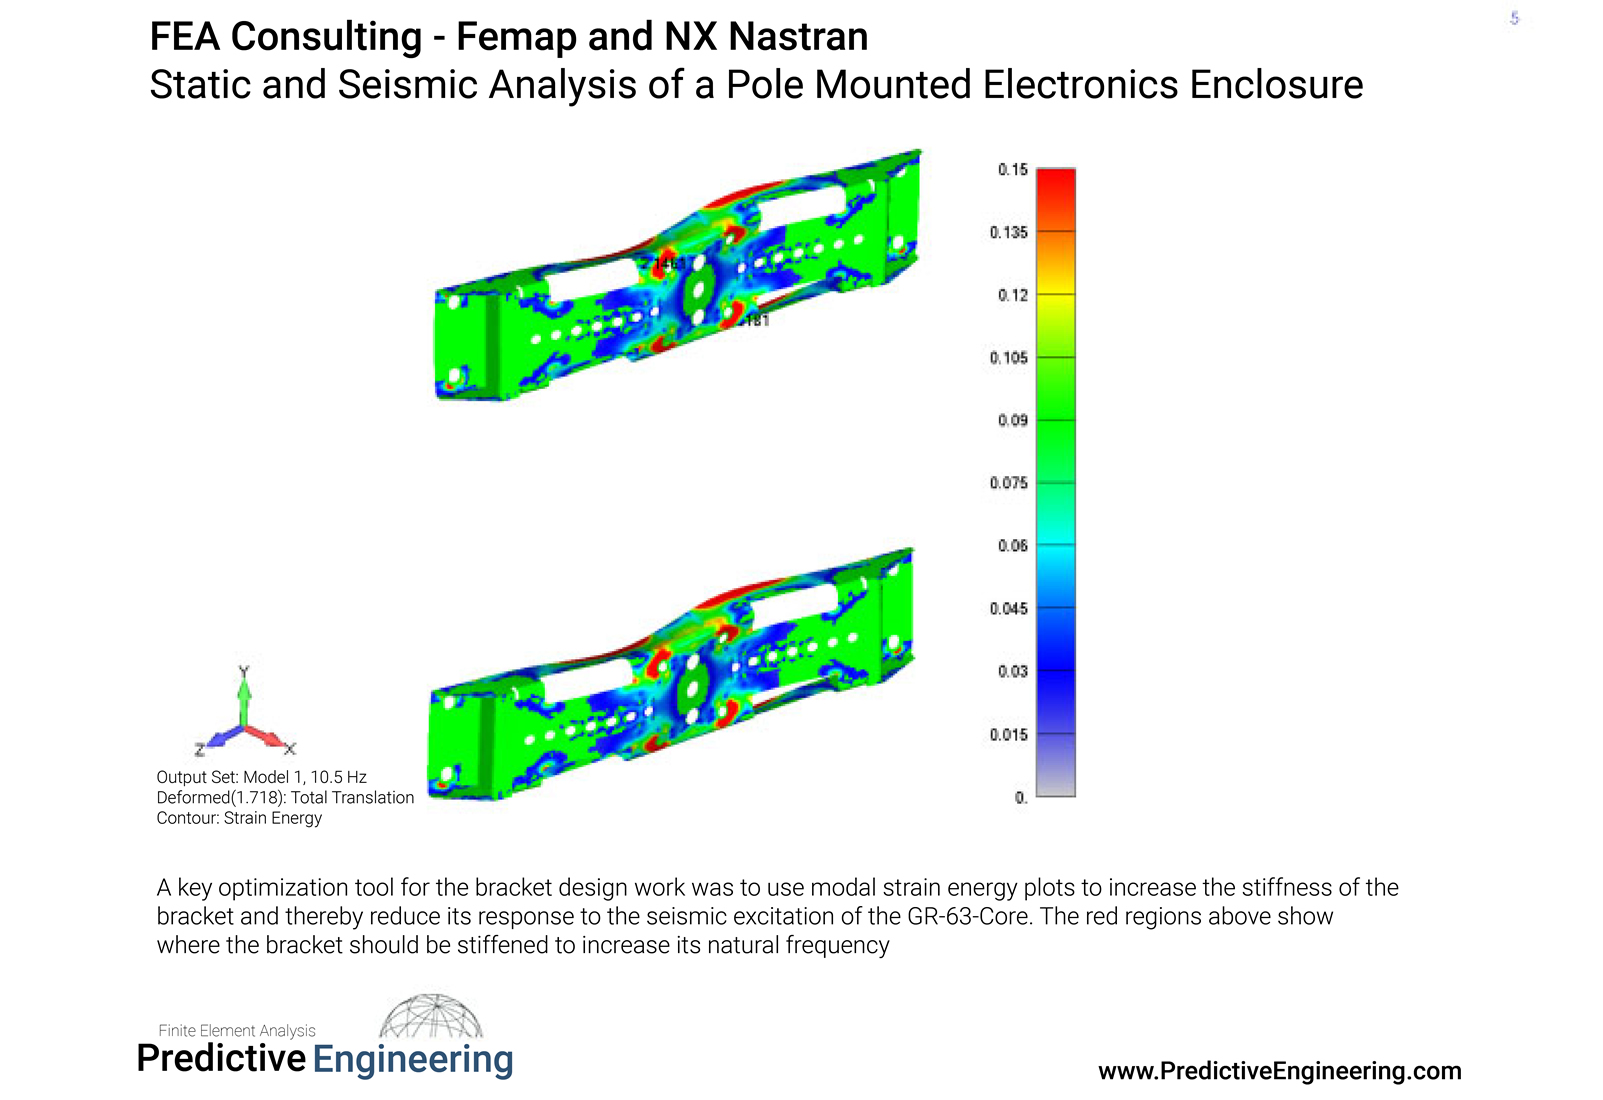 Figure 4: Strain energy density results from the normal modes analysis of the pole-mounted electronics ensclousre